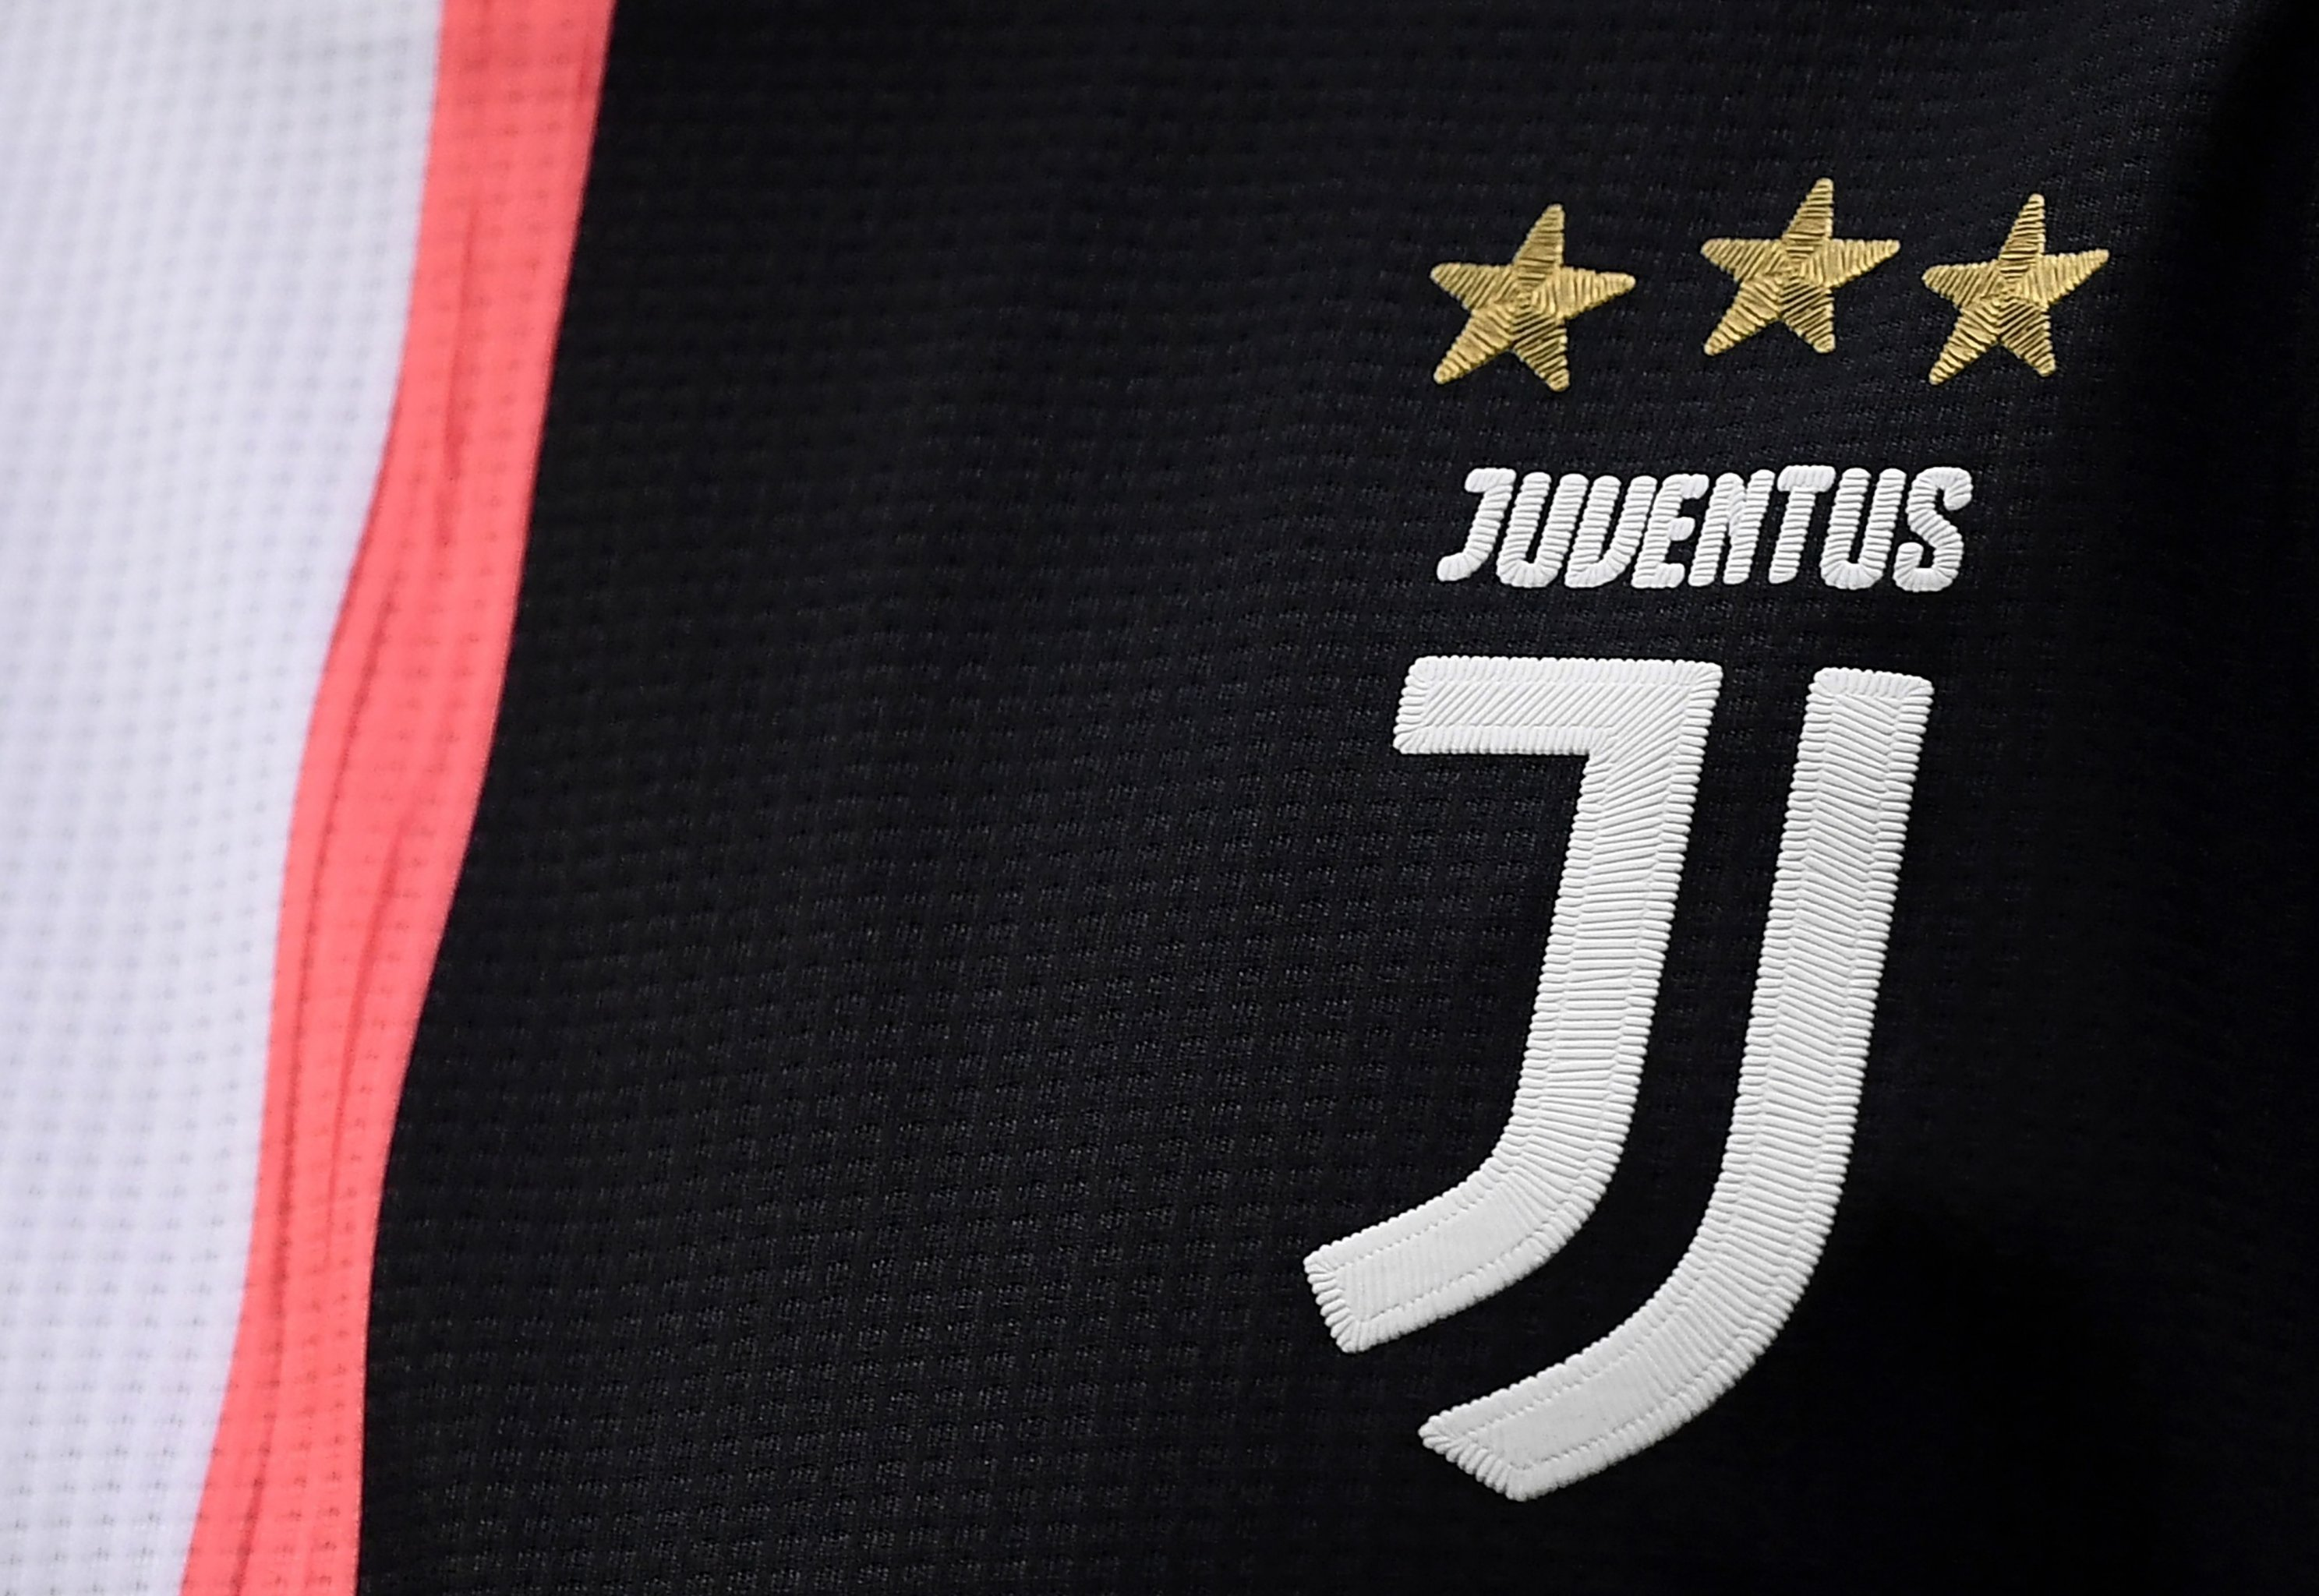 Rebranding Juventus How A New Logo And Ronaldo Have Changed Everything Bleacher Report Latest News Videos And Highlights